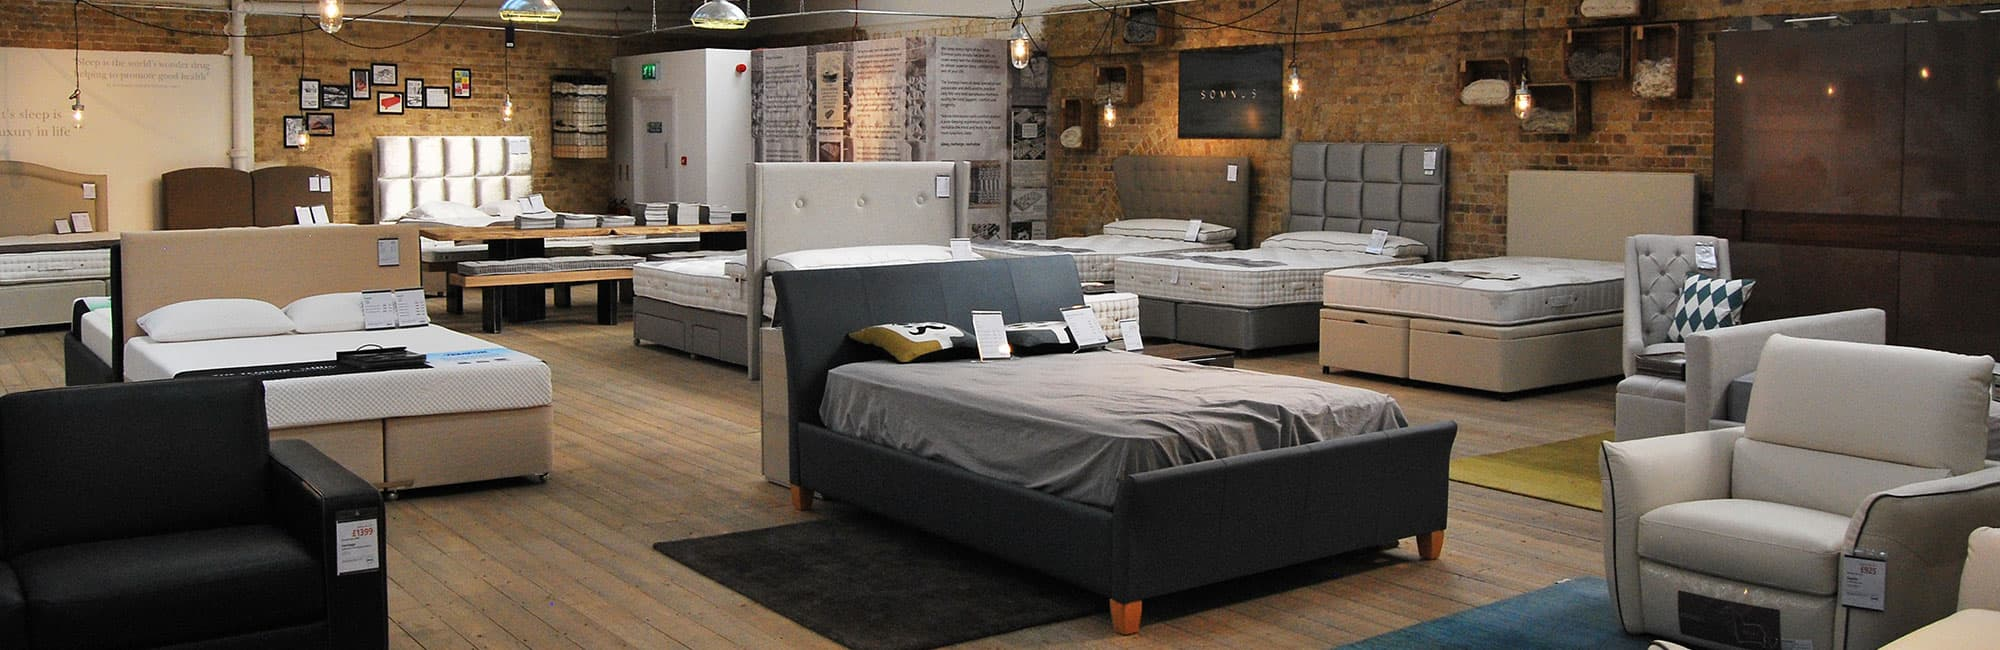 Bed store